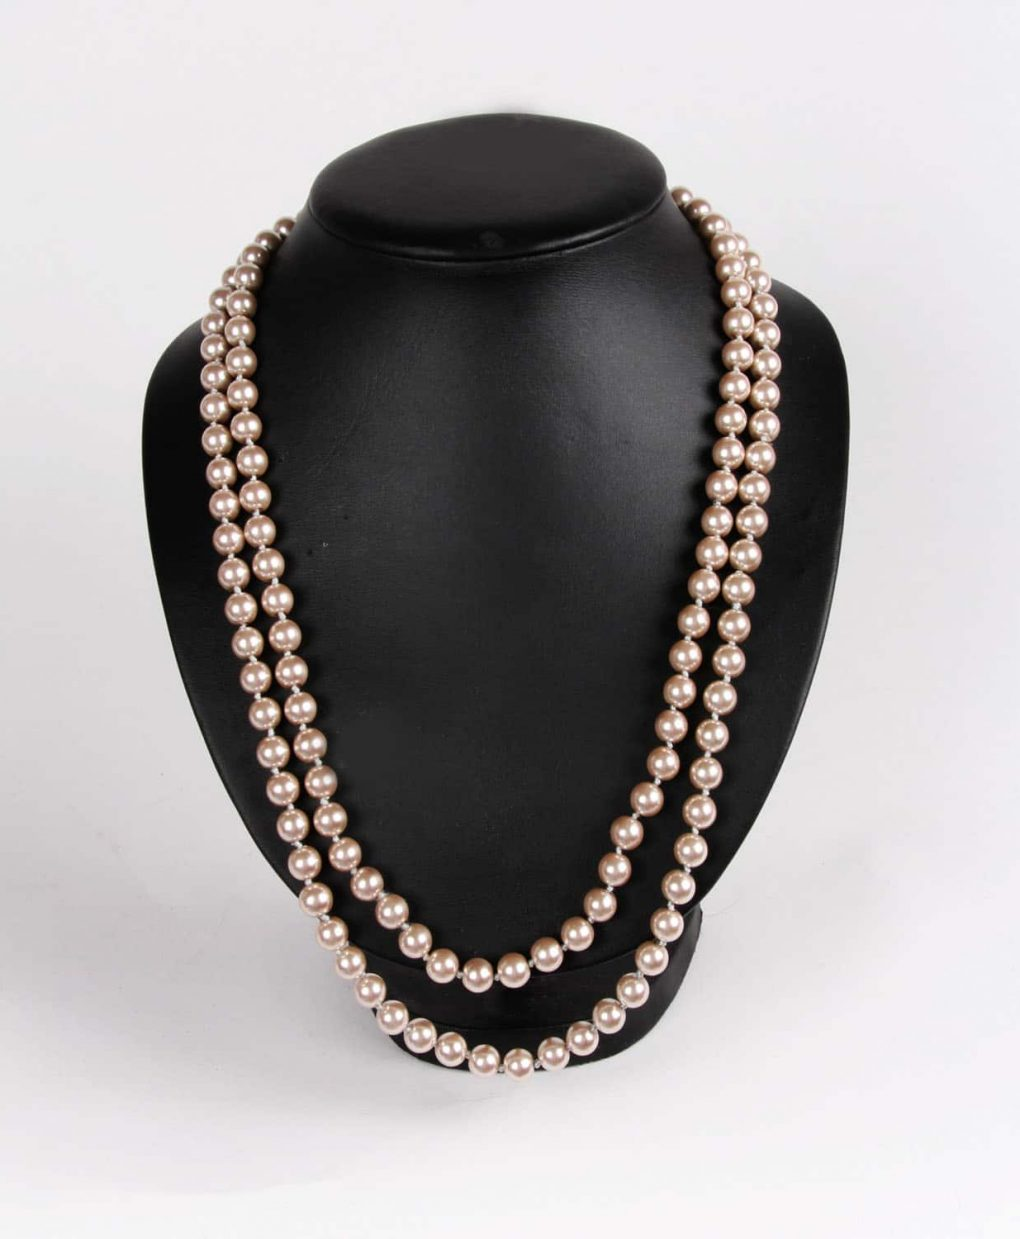 Alila Long Chain of Genuine Peach Pearls Necklace